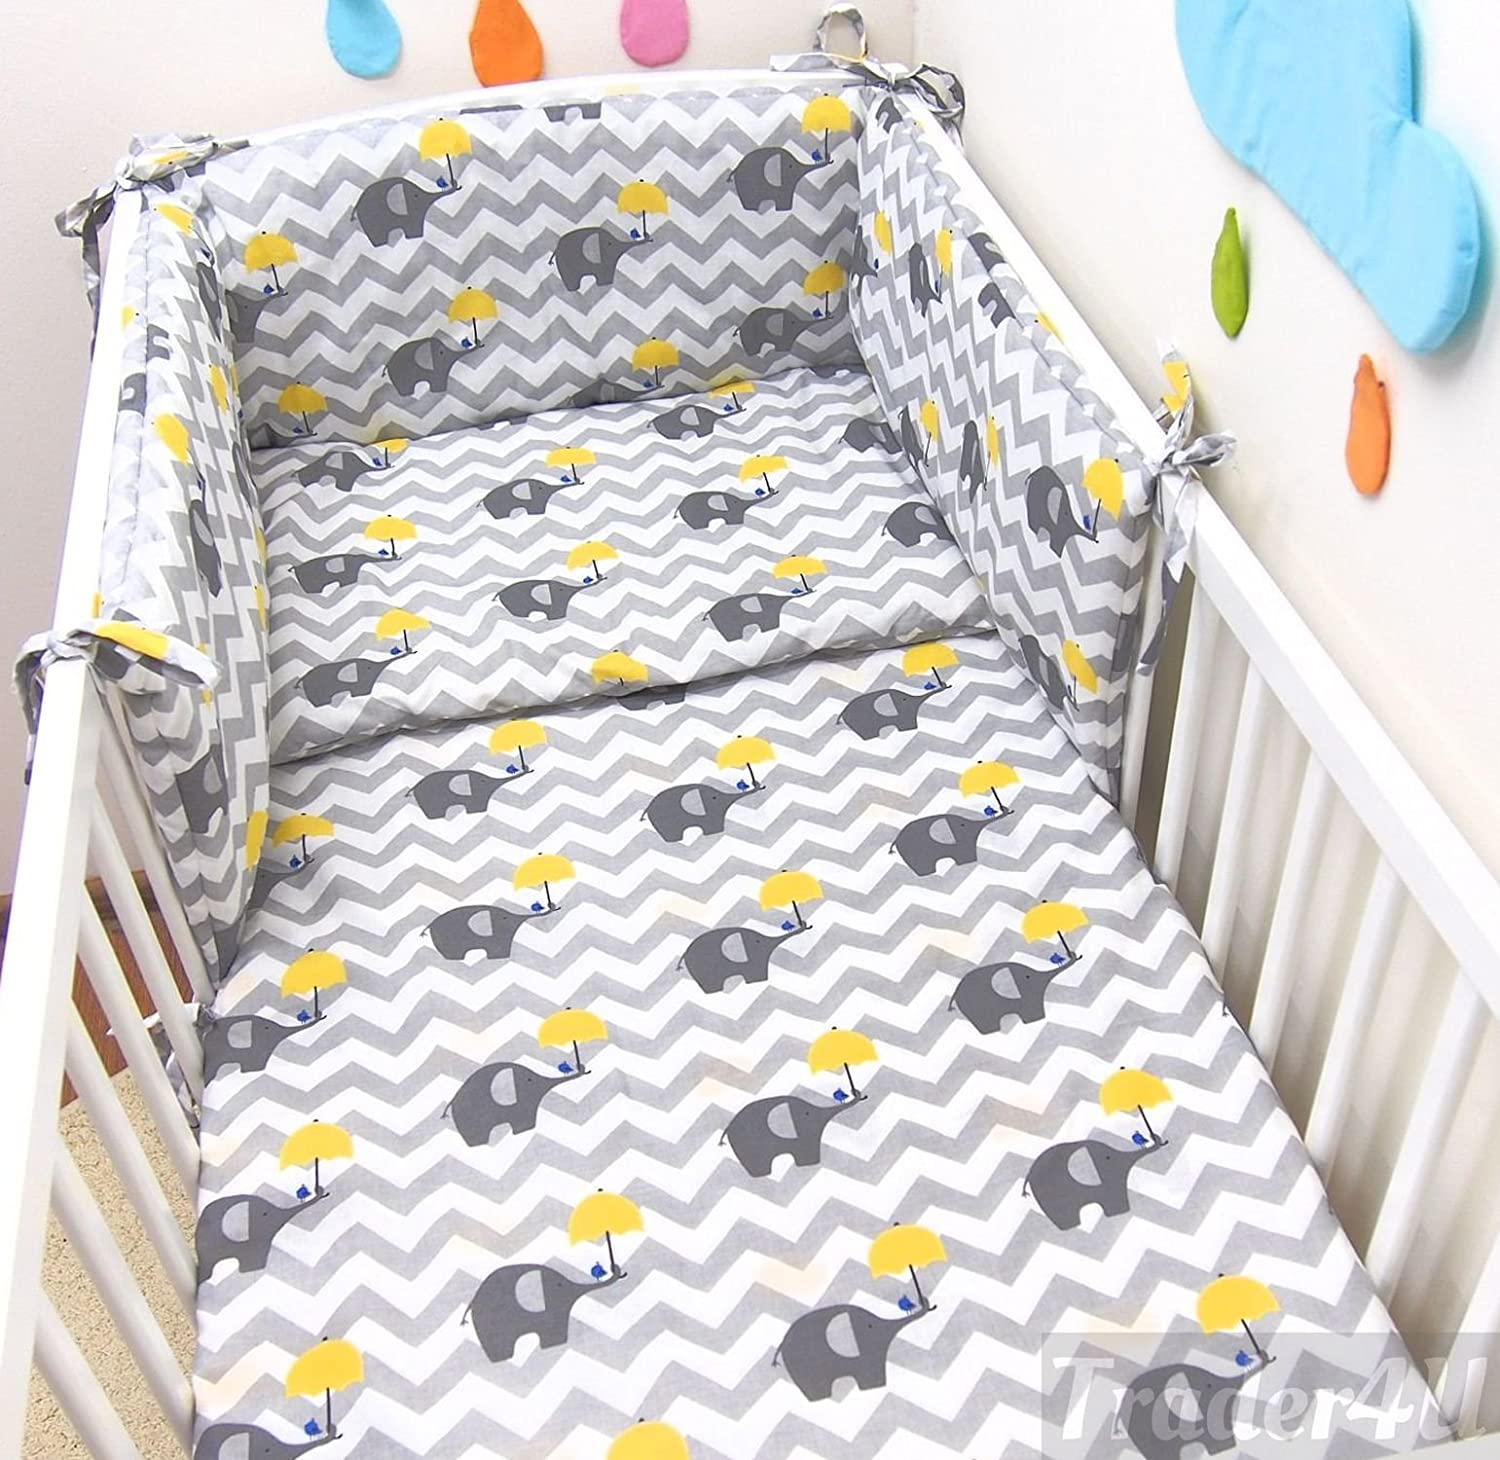 MillaLu 3 Pcs Baby Nursery Bedding Set fit to Cot 120x60cm or Cot Bed 140x70cm Padded Bumper Fit to Cot Bed 140x70 cm, White Elephants on Blue